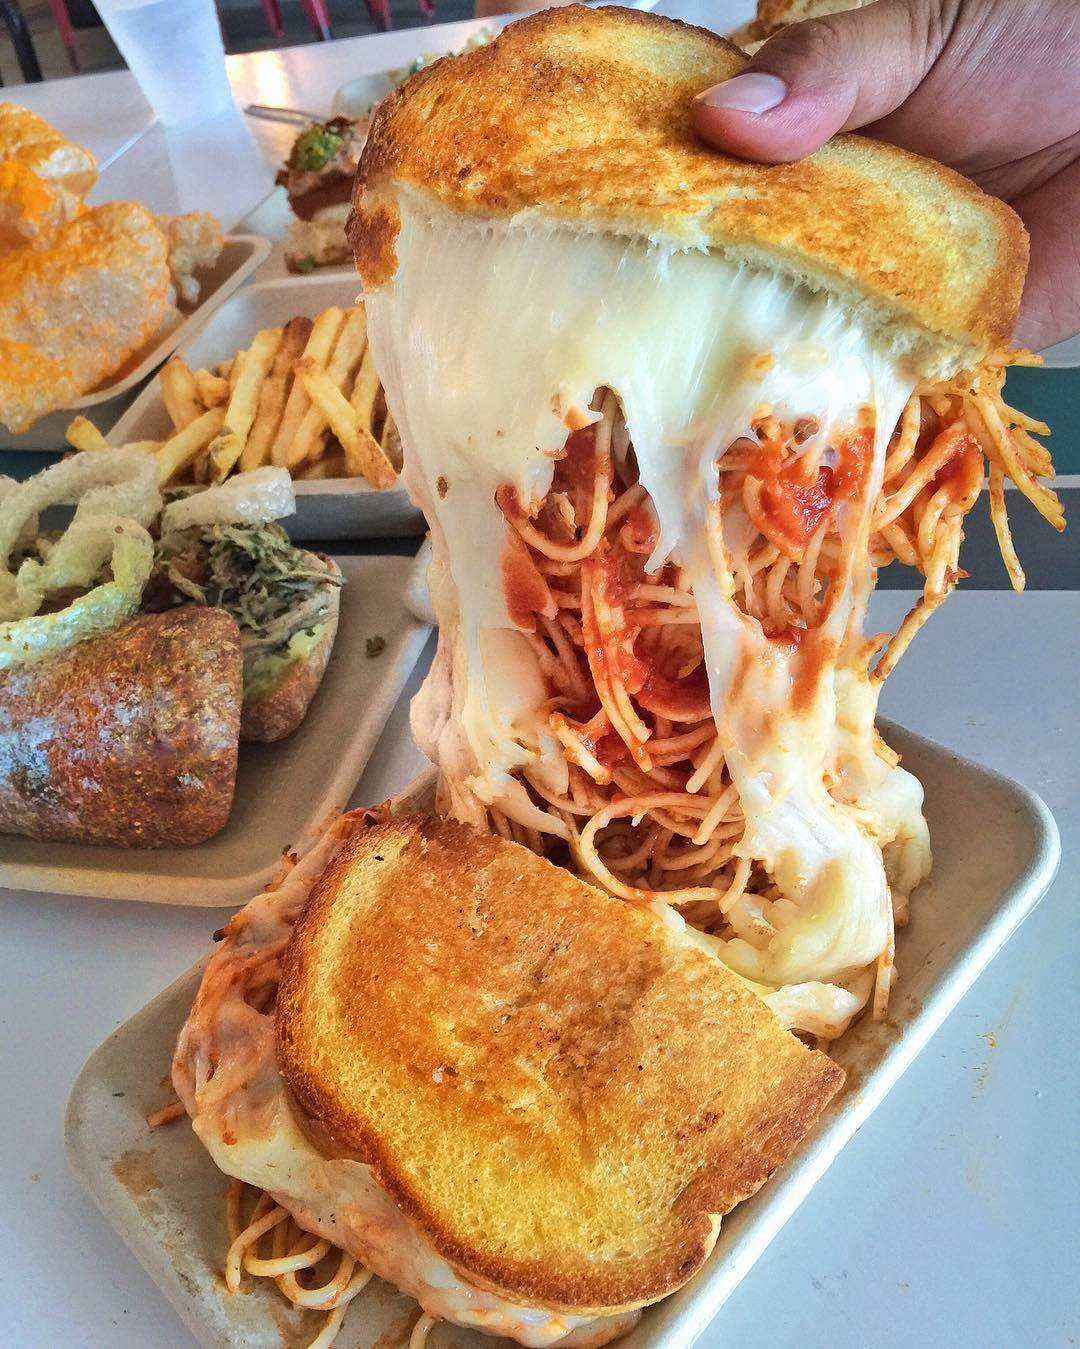 Instagram is raging over these spaghetti grilled cheese